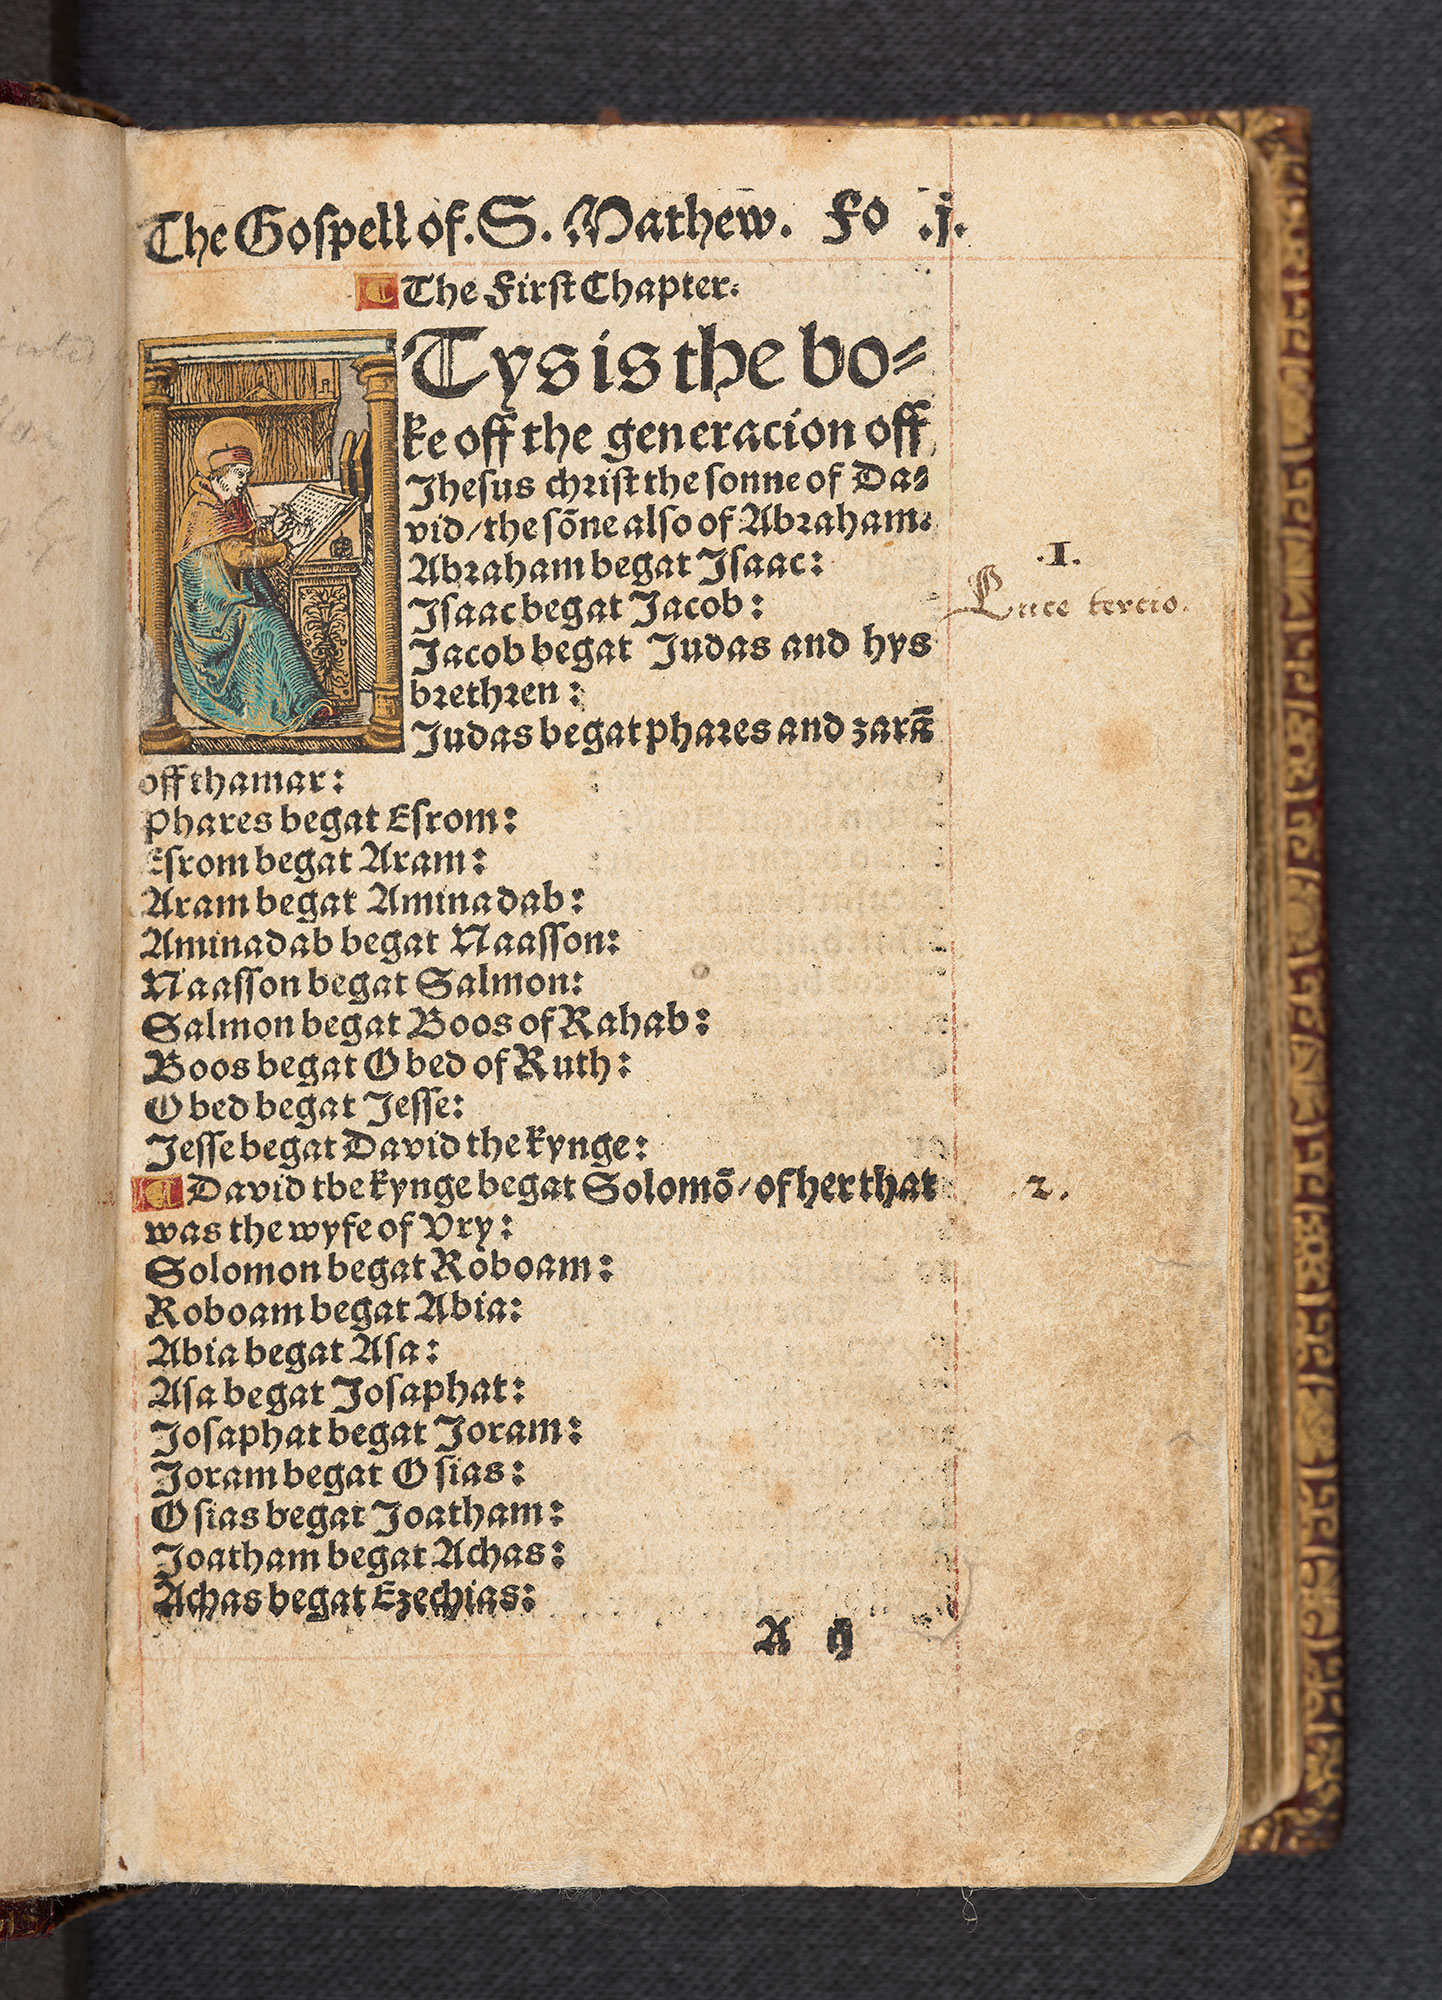 Tyndale's New Testament, 1526